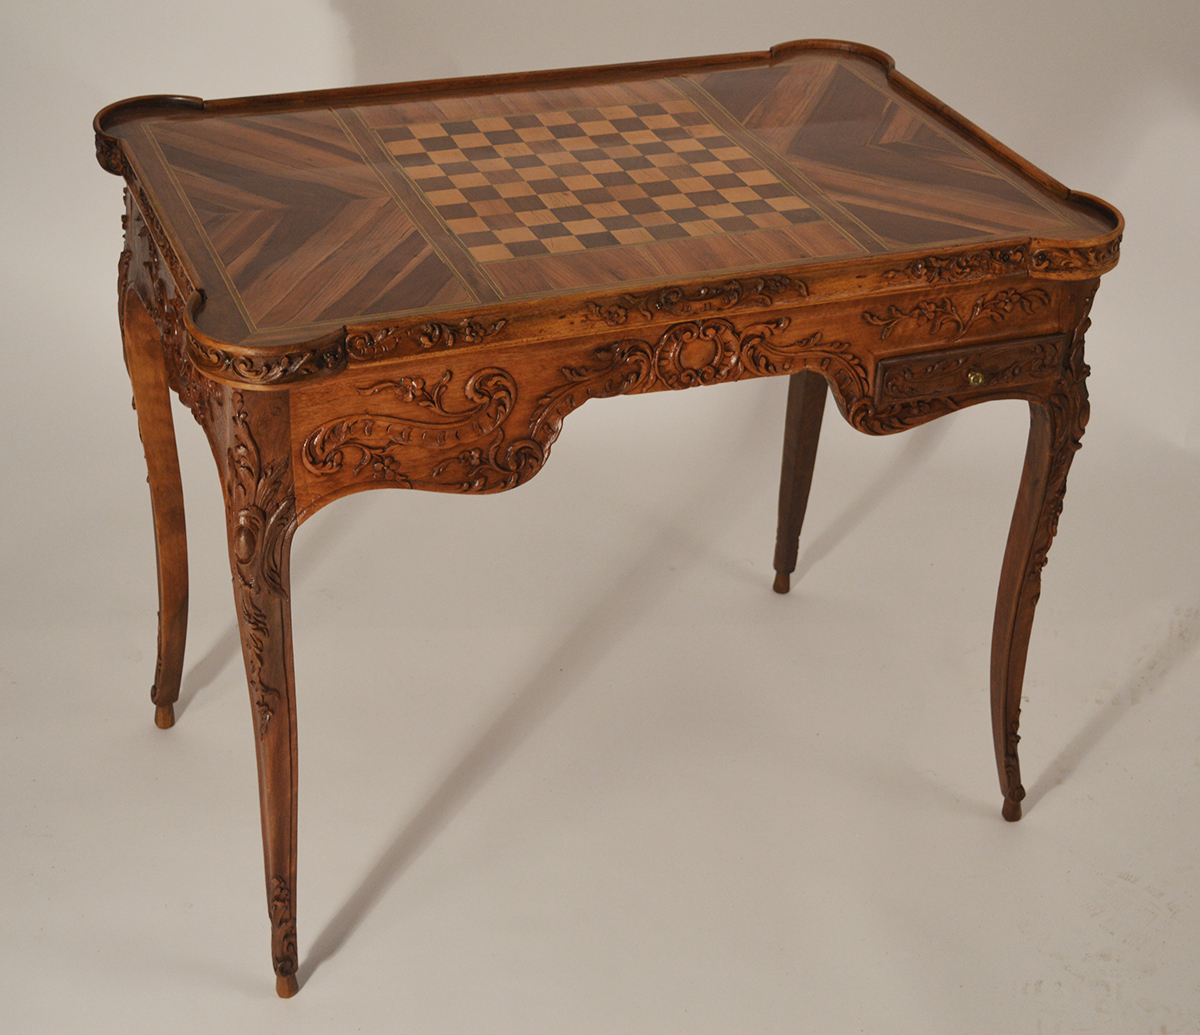 Fine, Louis XV style tric-trac table